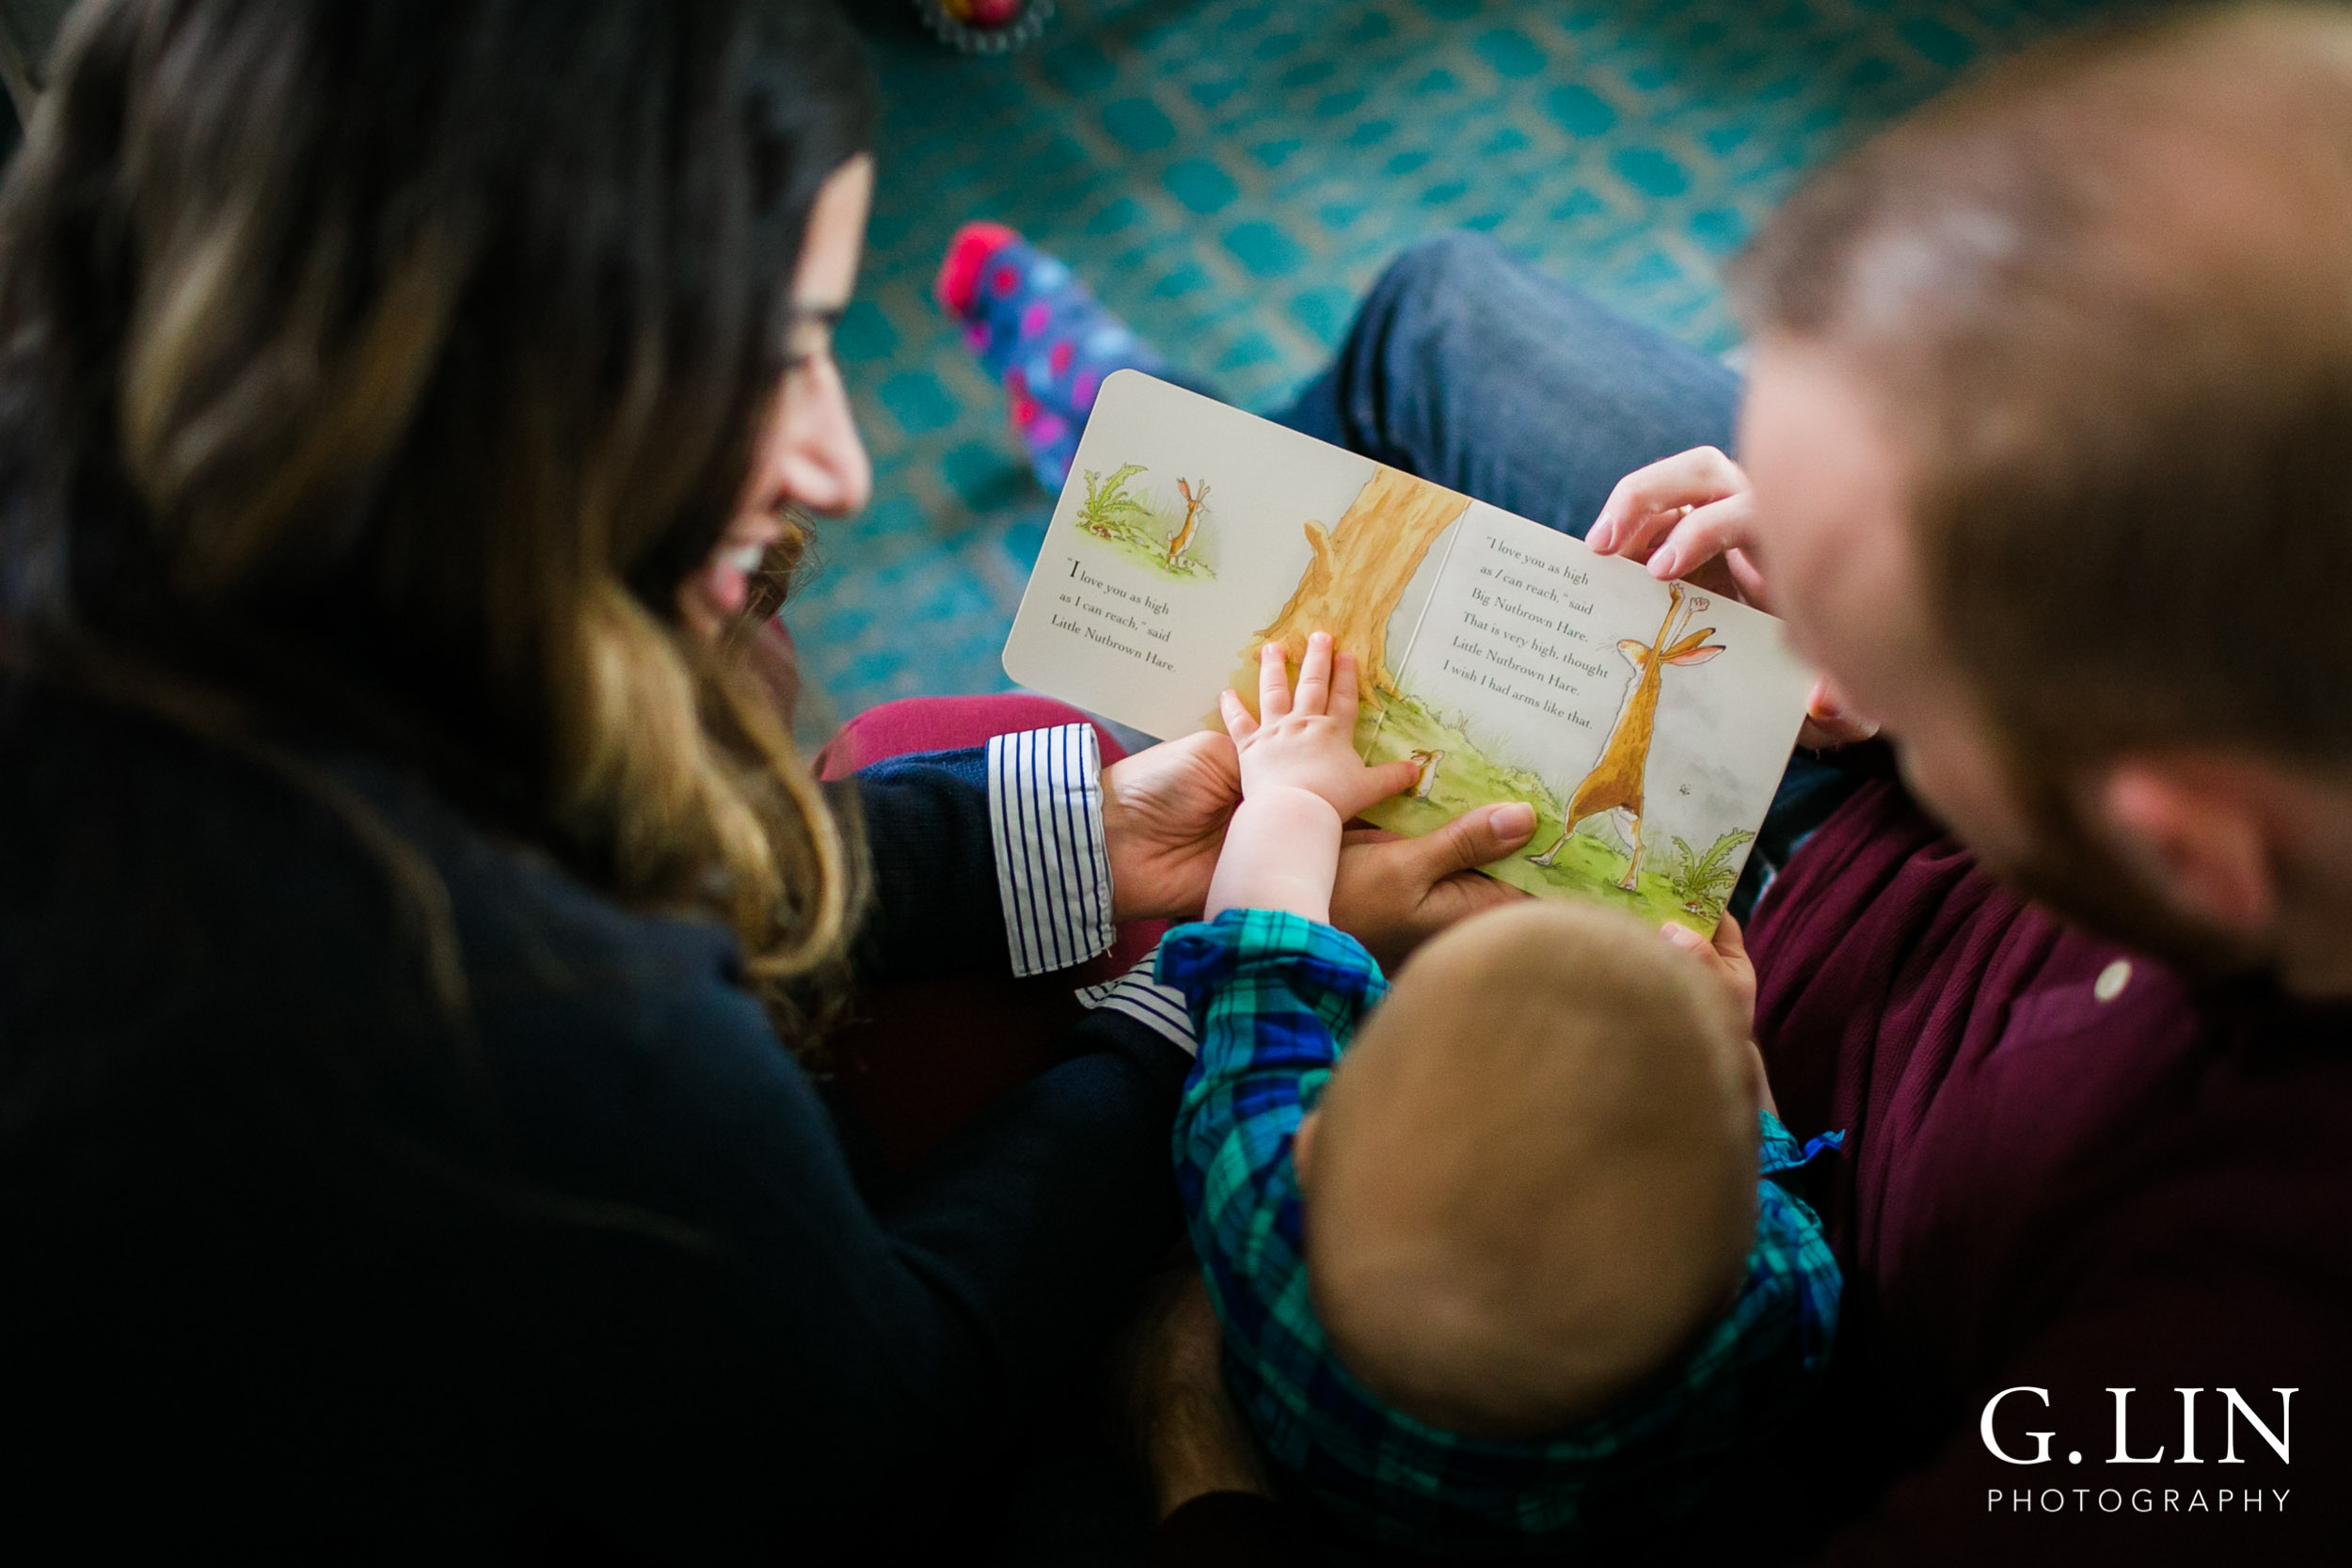 Durham Family Photographer | G. Lin Photography | parents reading book to baby